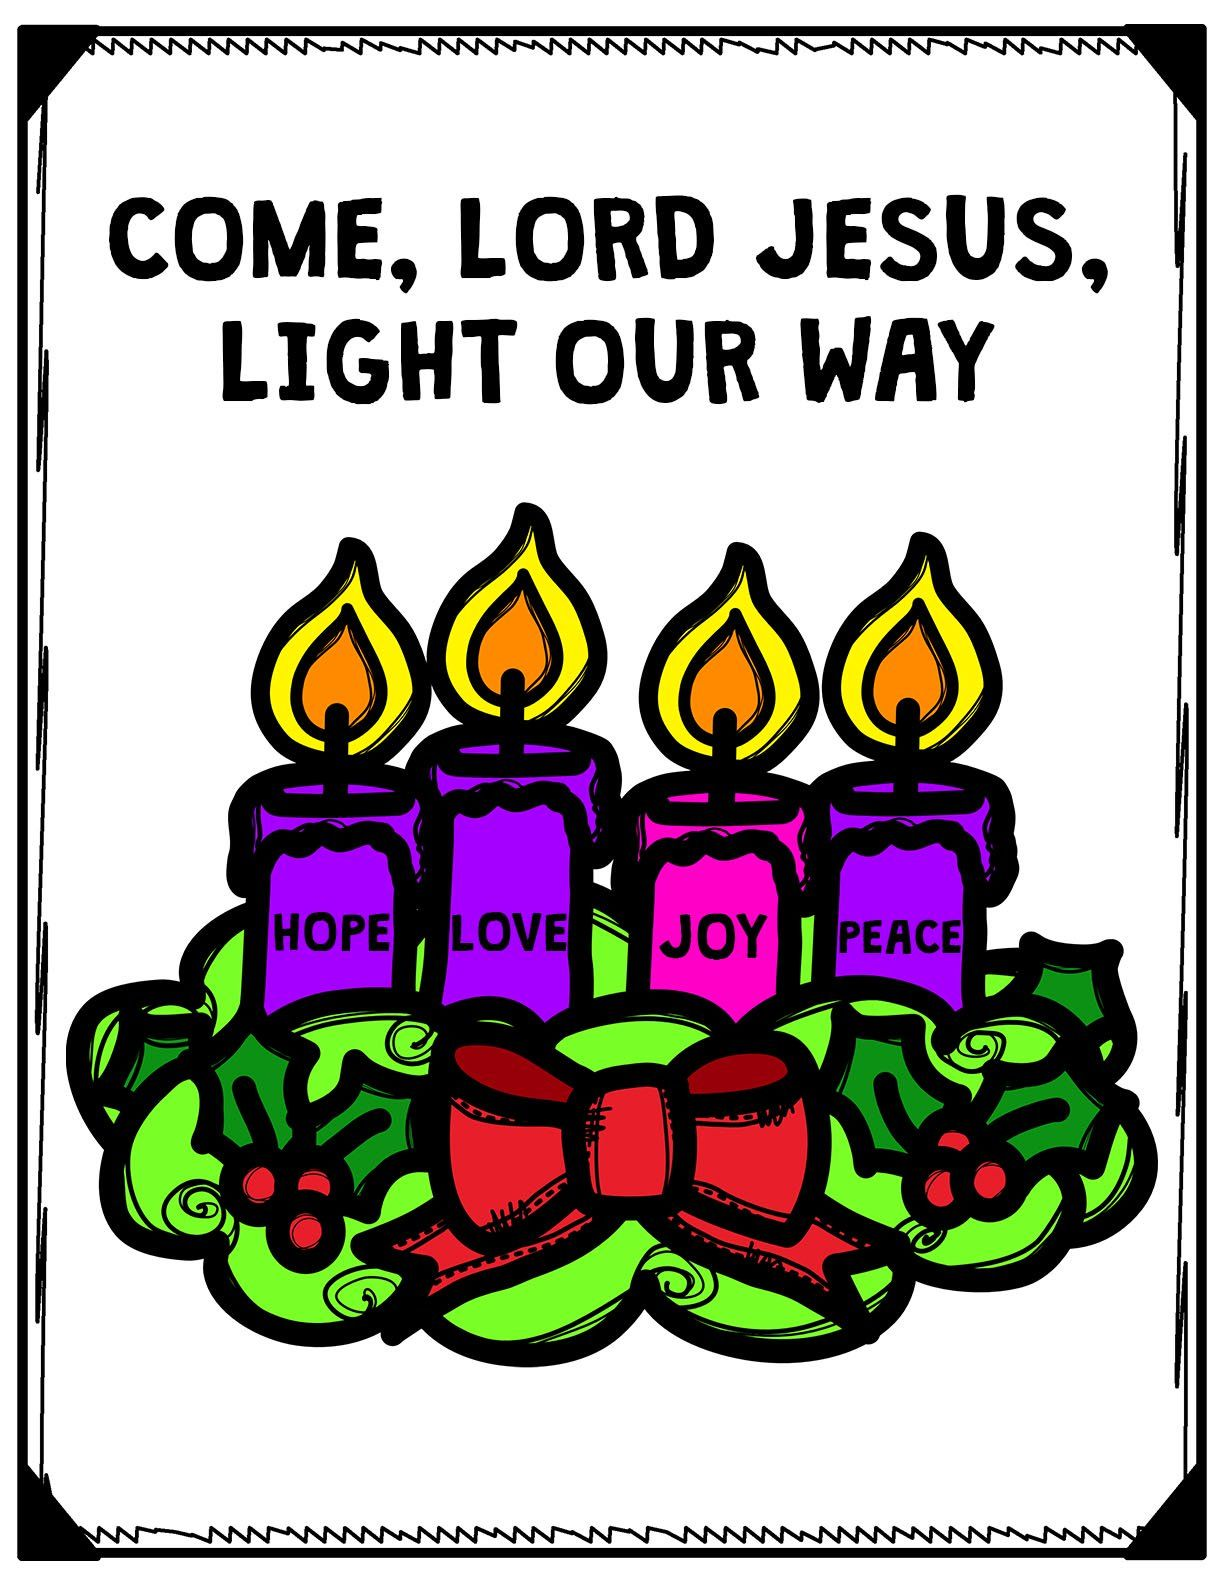 This Advent Wreath Poster Comes In 2 Versions Color And B